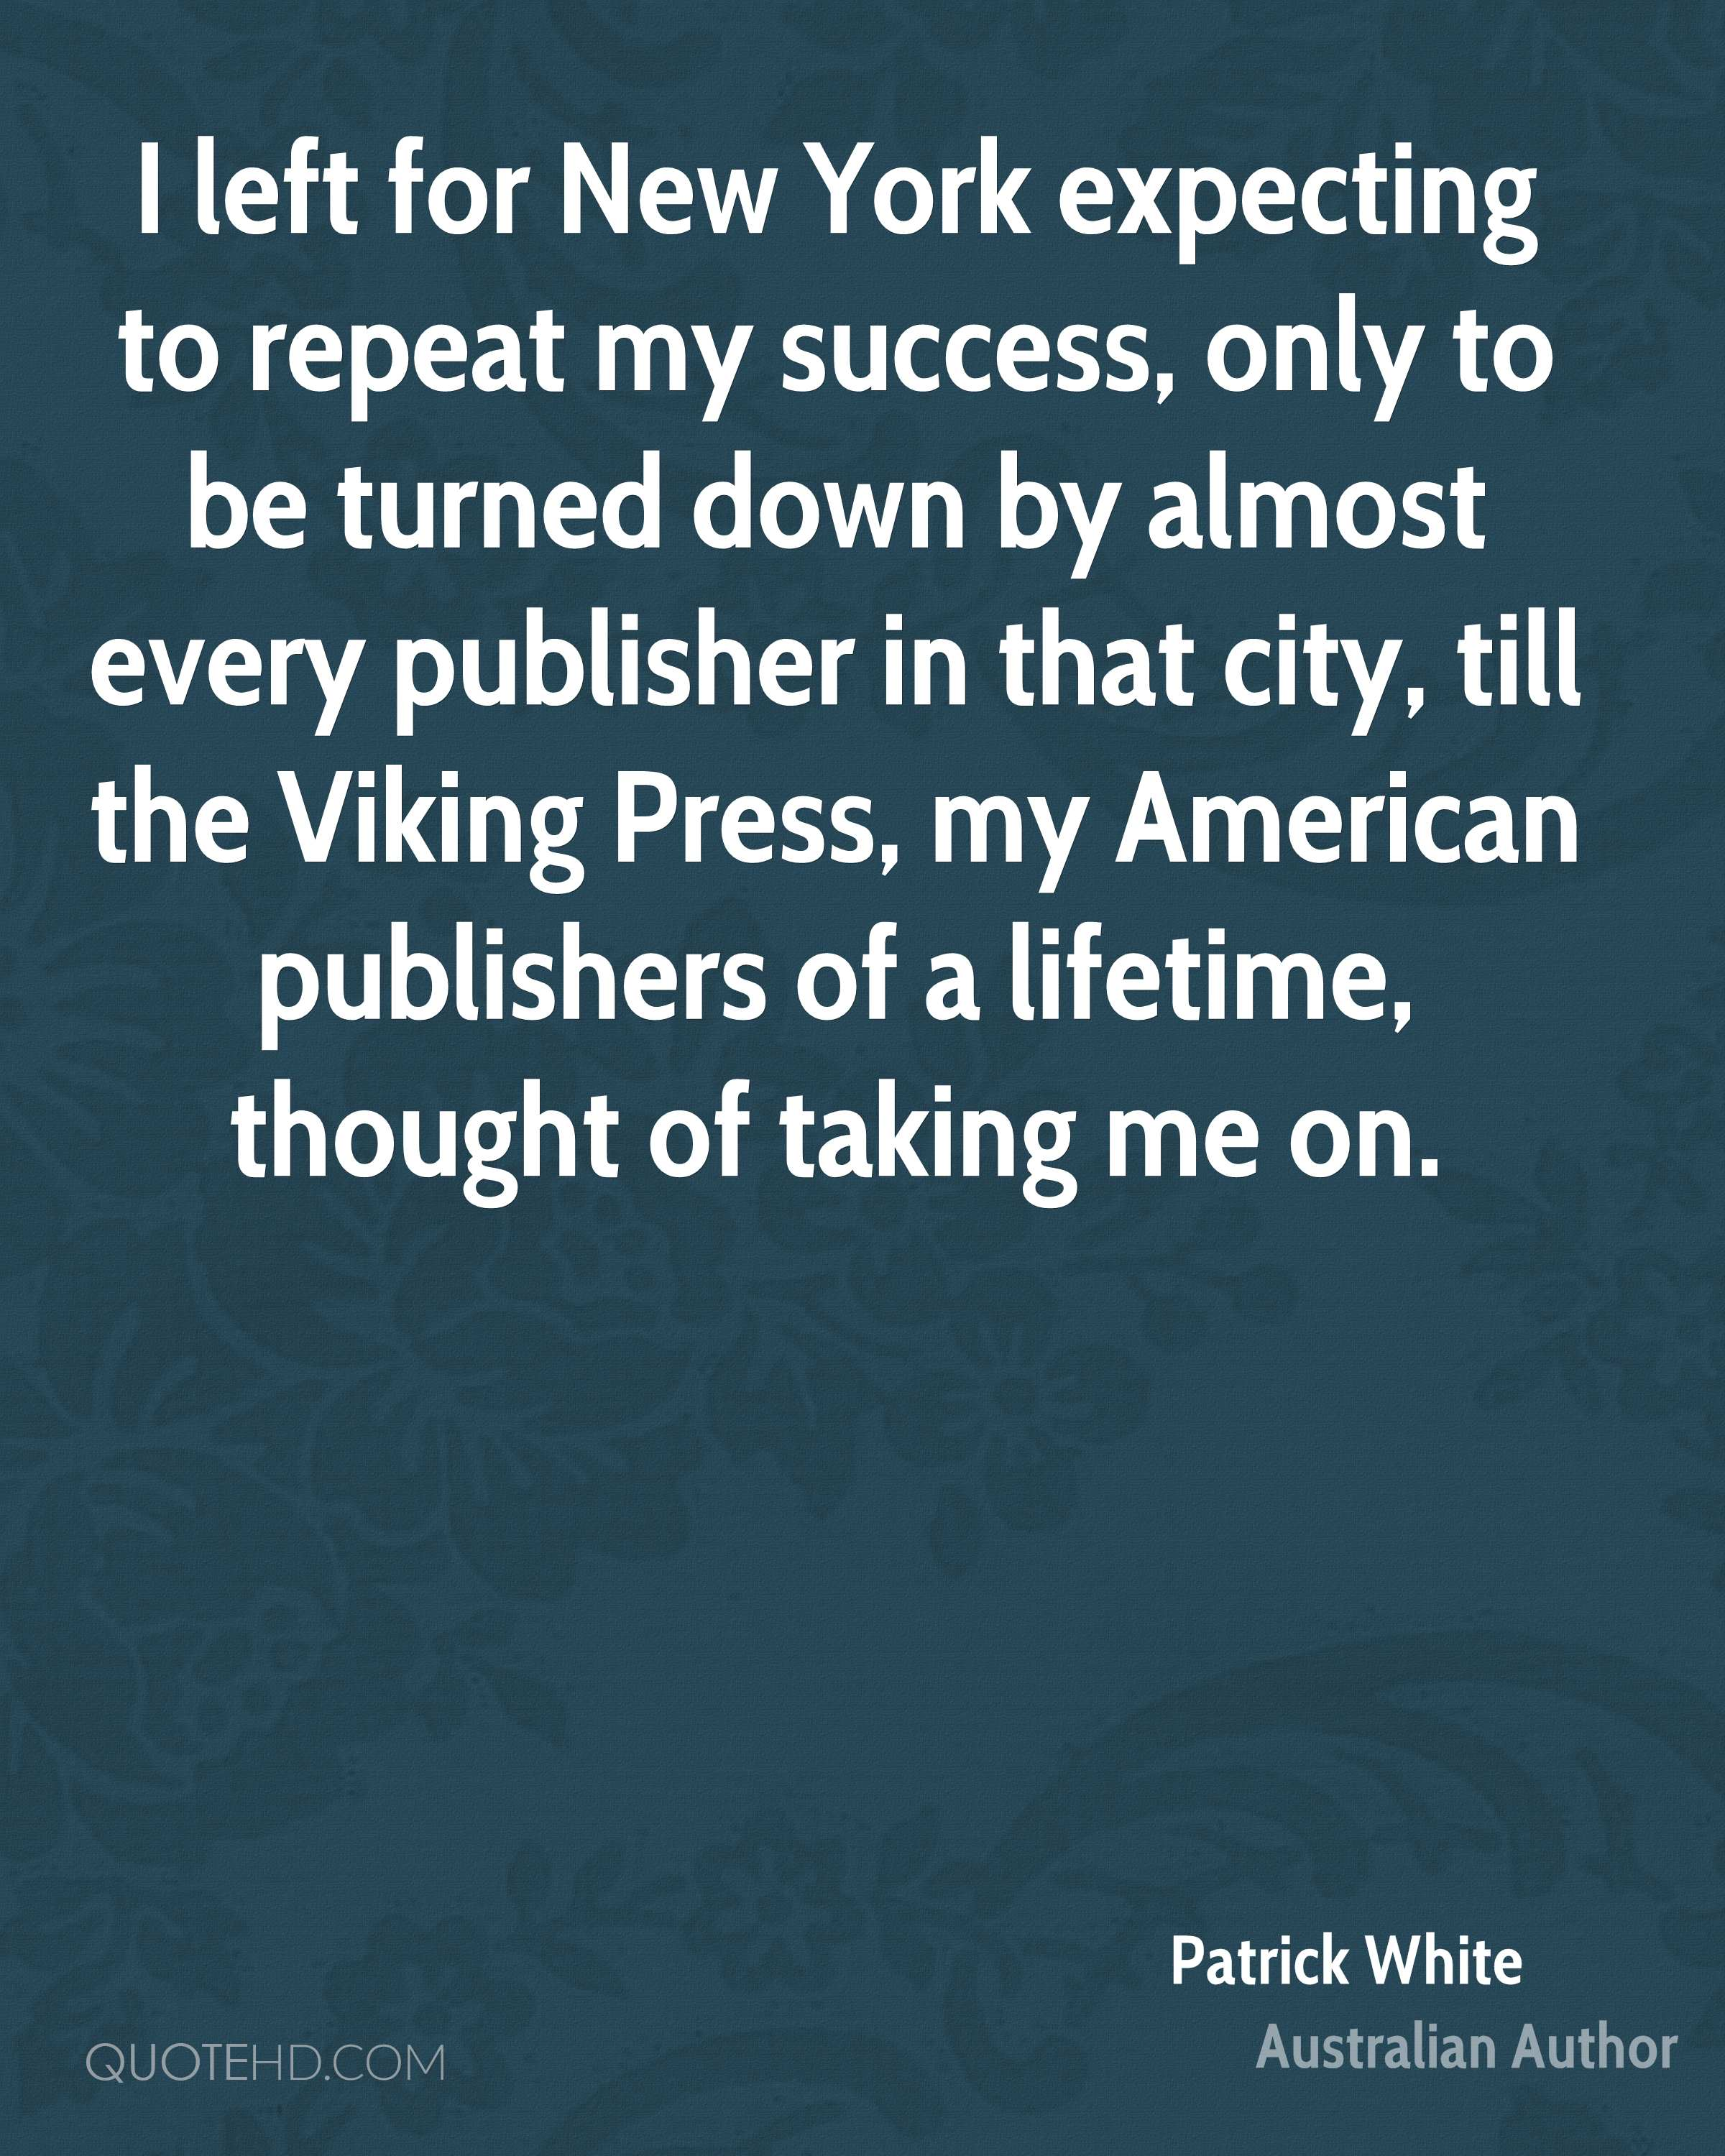 I left for New York expecting to repeat my success, only to be turned down by almost every publisher in that city, till the Viking Press, my American publishers of a lifetime, thought of taking me on.